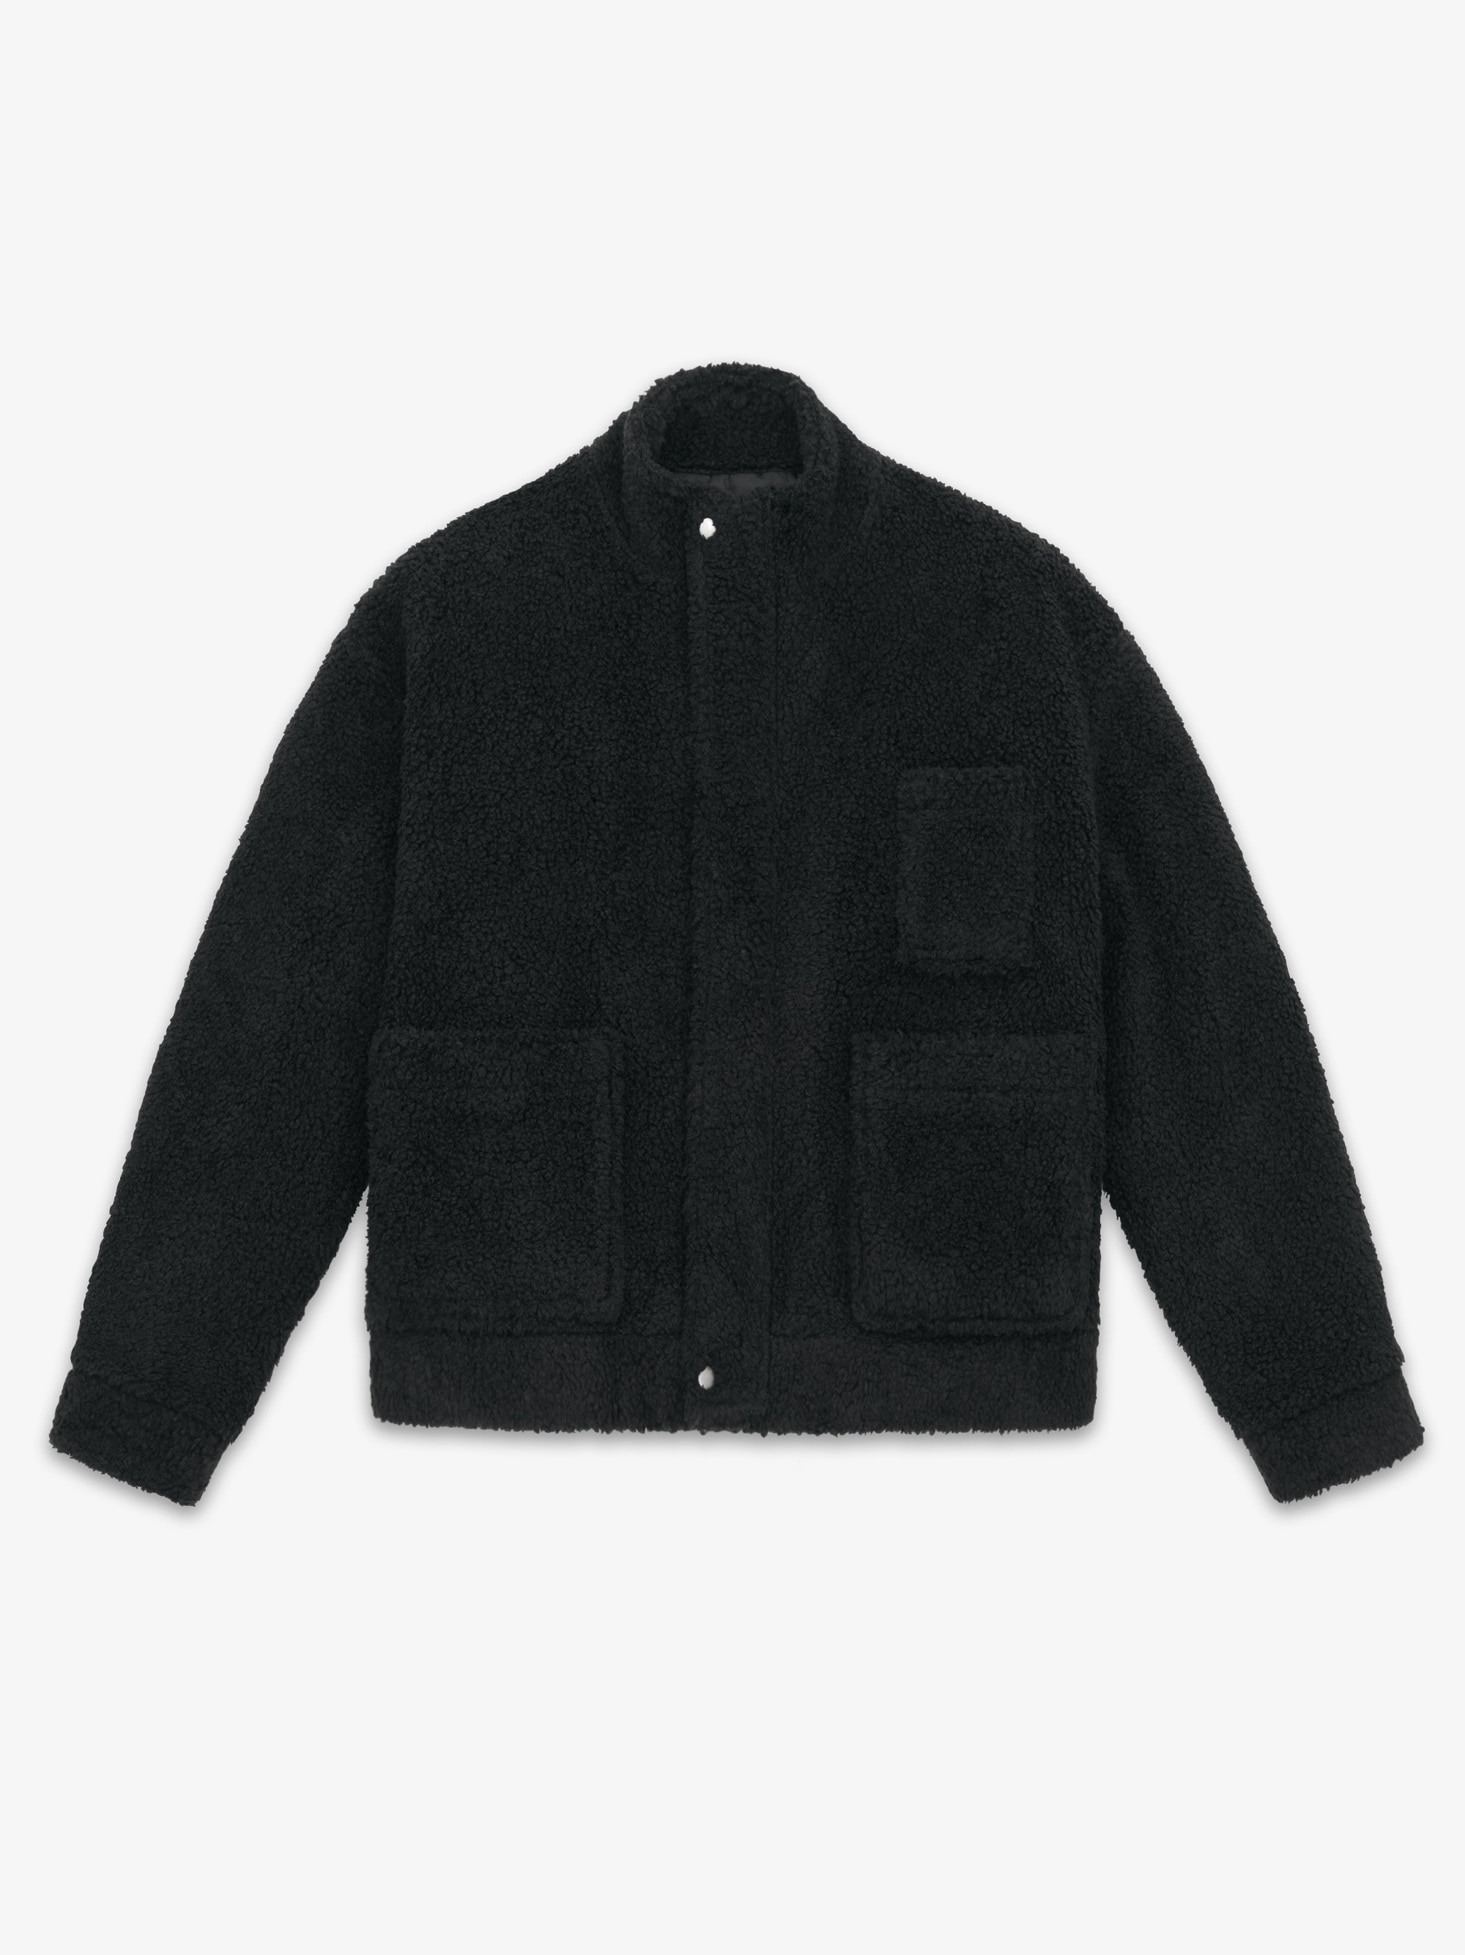 LAMBS WOOL MOBILE JACKET(BLACK) 시즌오프 60% 특별할인 248,000원 ->